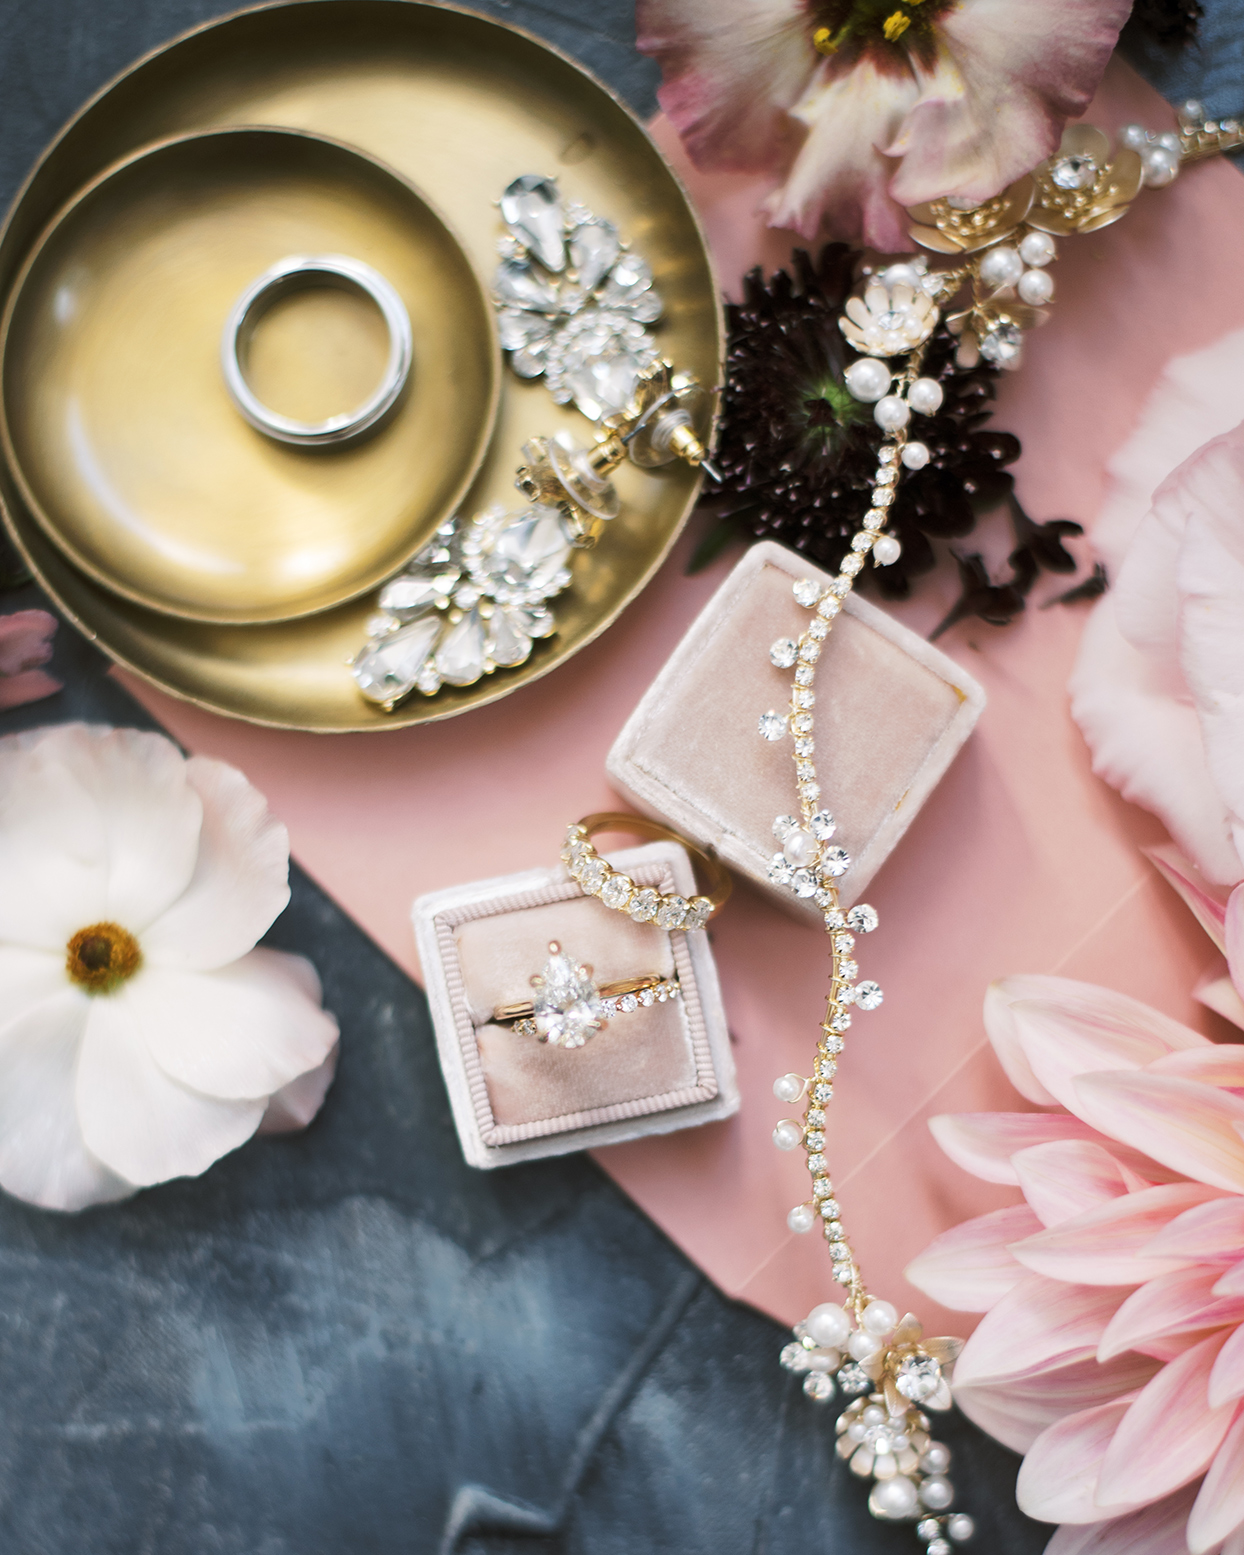 Wedding rings, necklace, and earrings from Olive and Piper